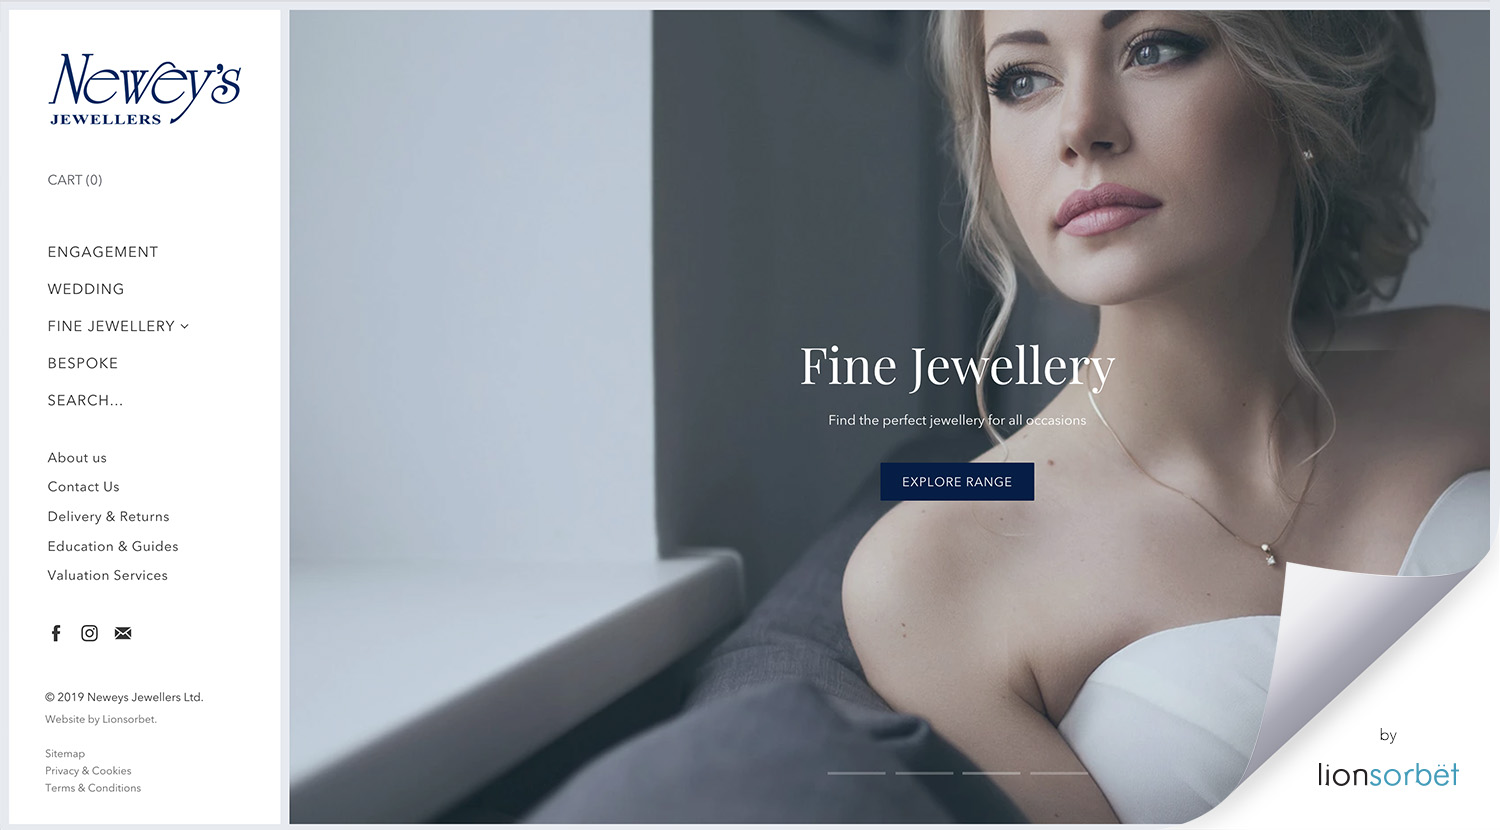 neweys_jewellers_jewellery_website_design.jpg